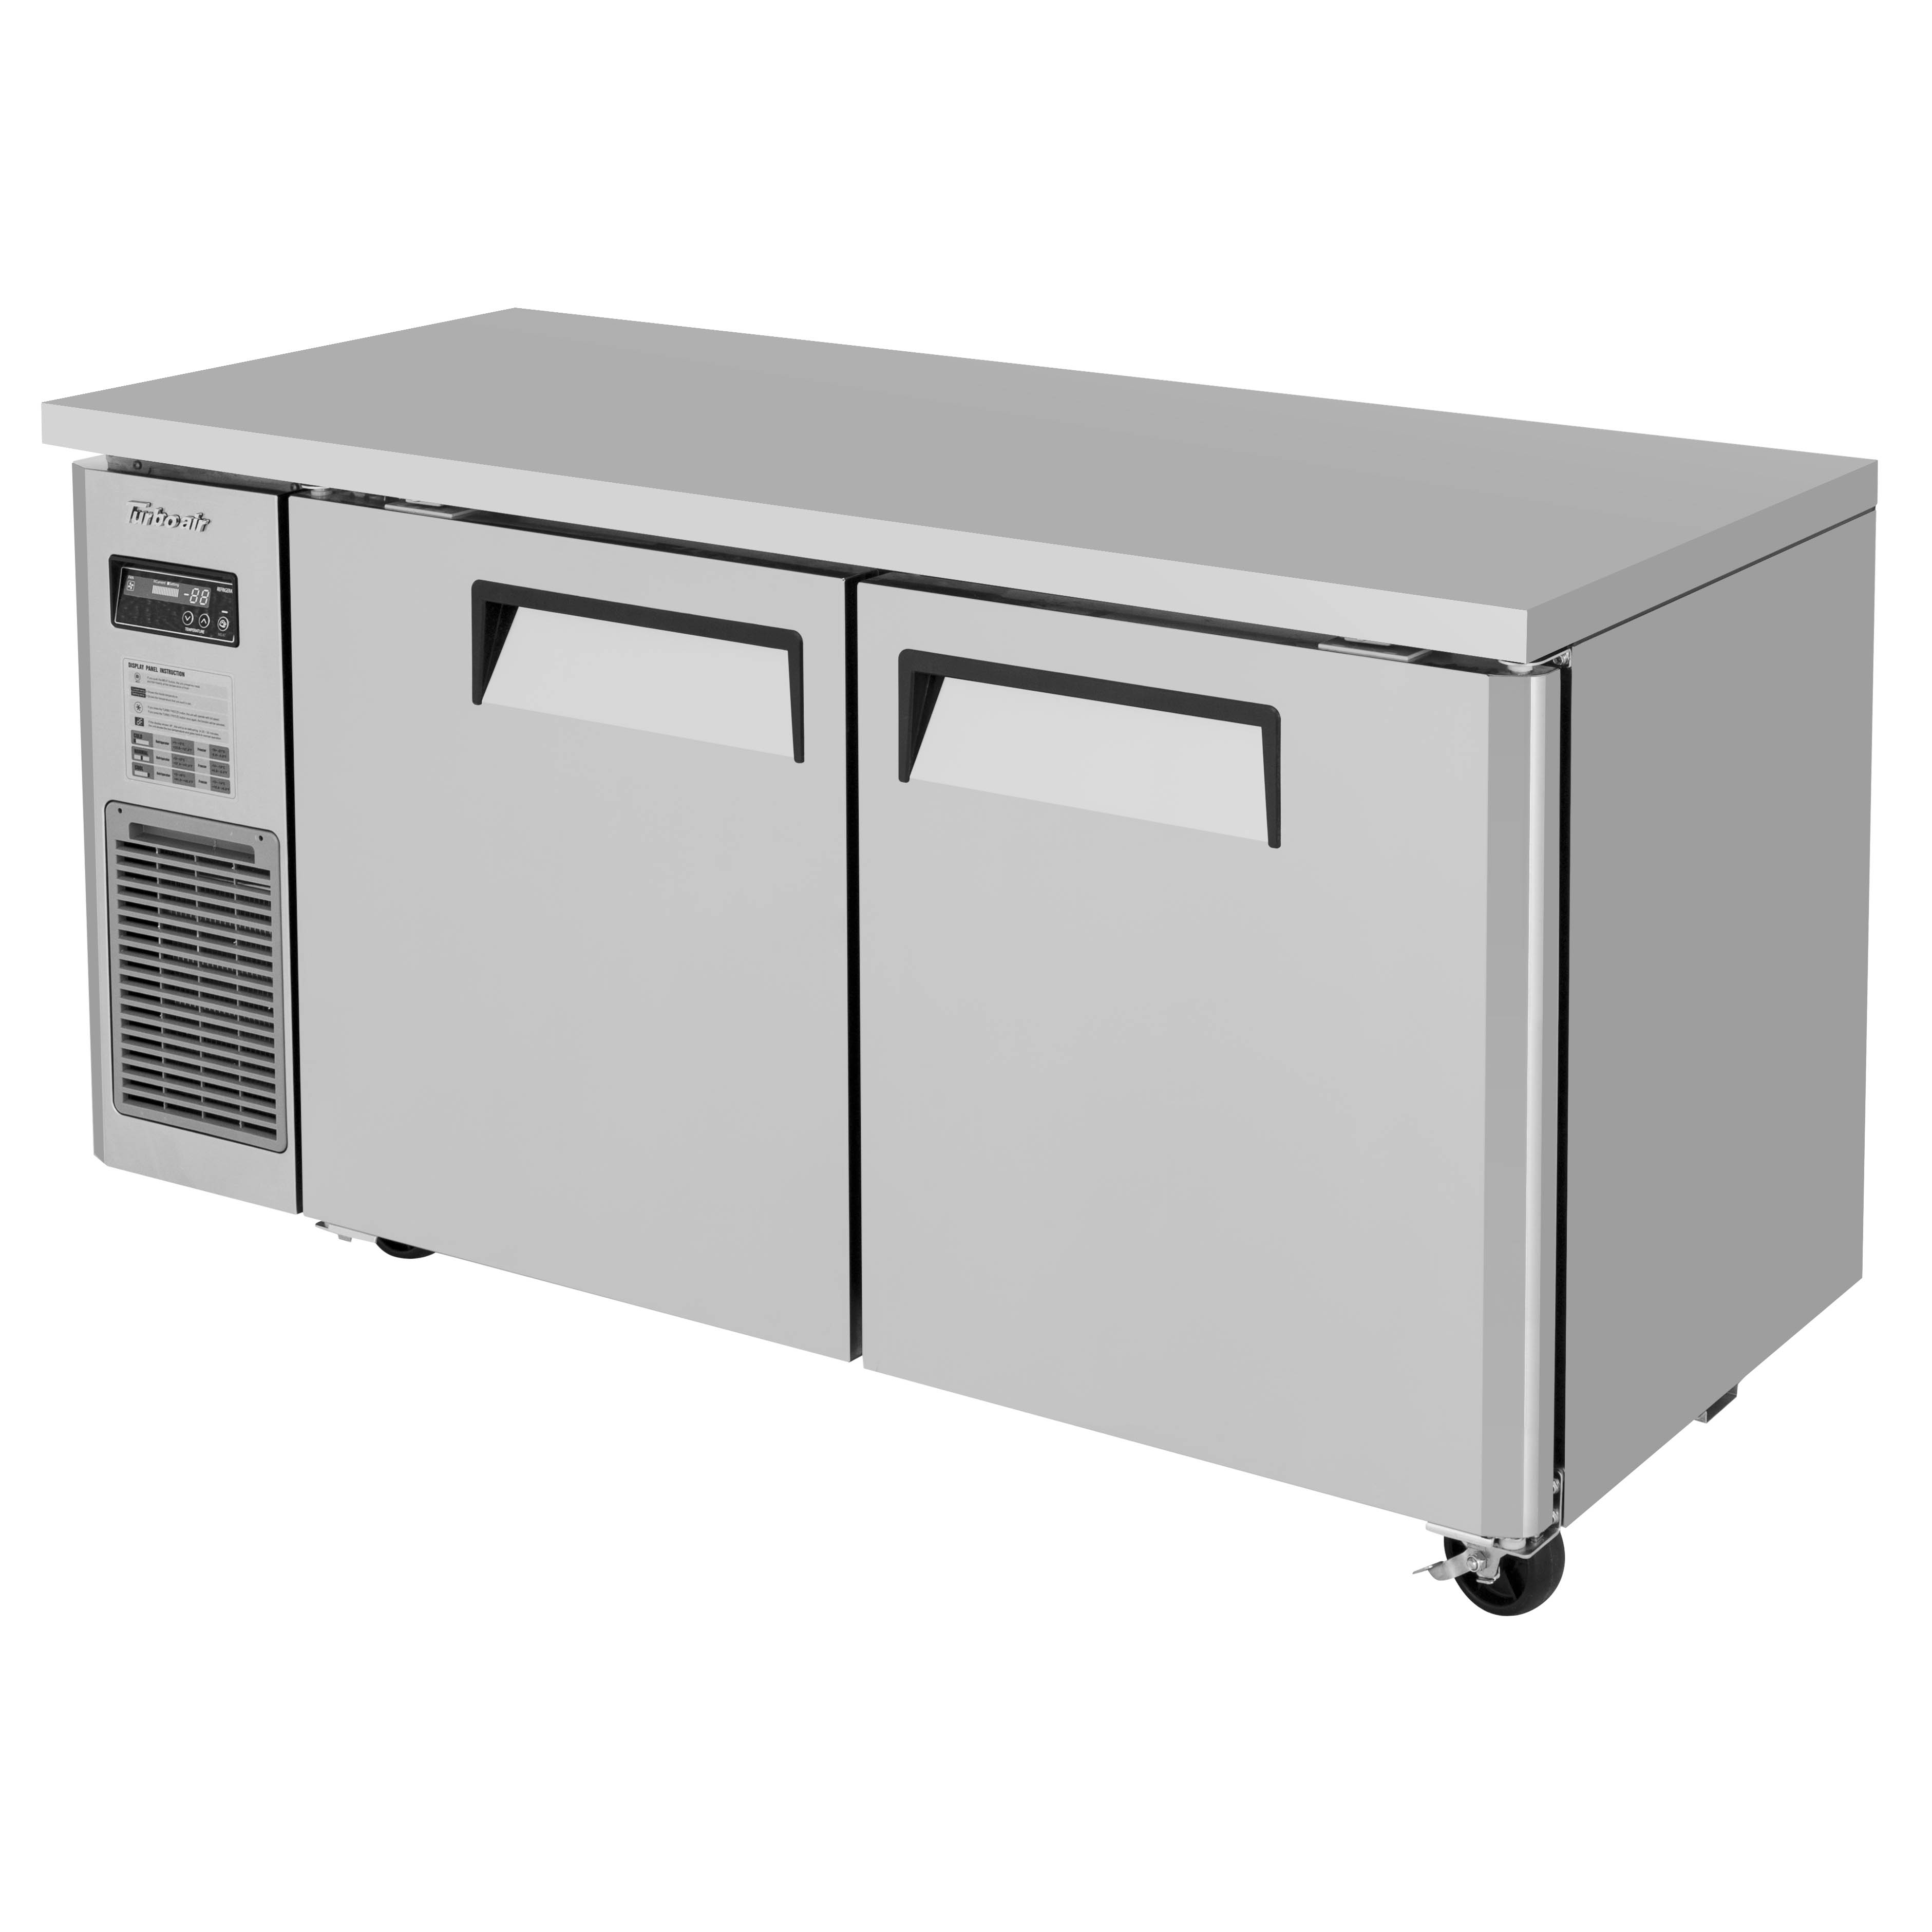 Turbo Air JUF-60S-N freezer, undercounter, reach-in